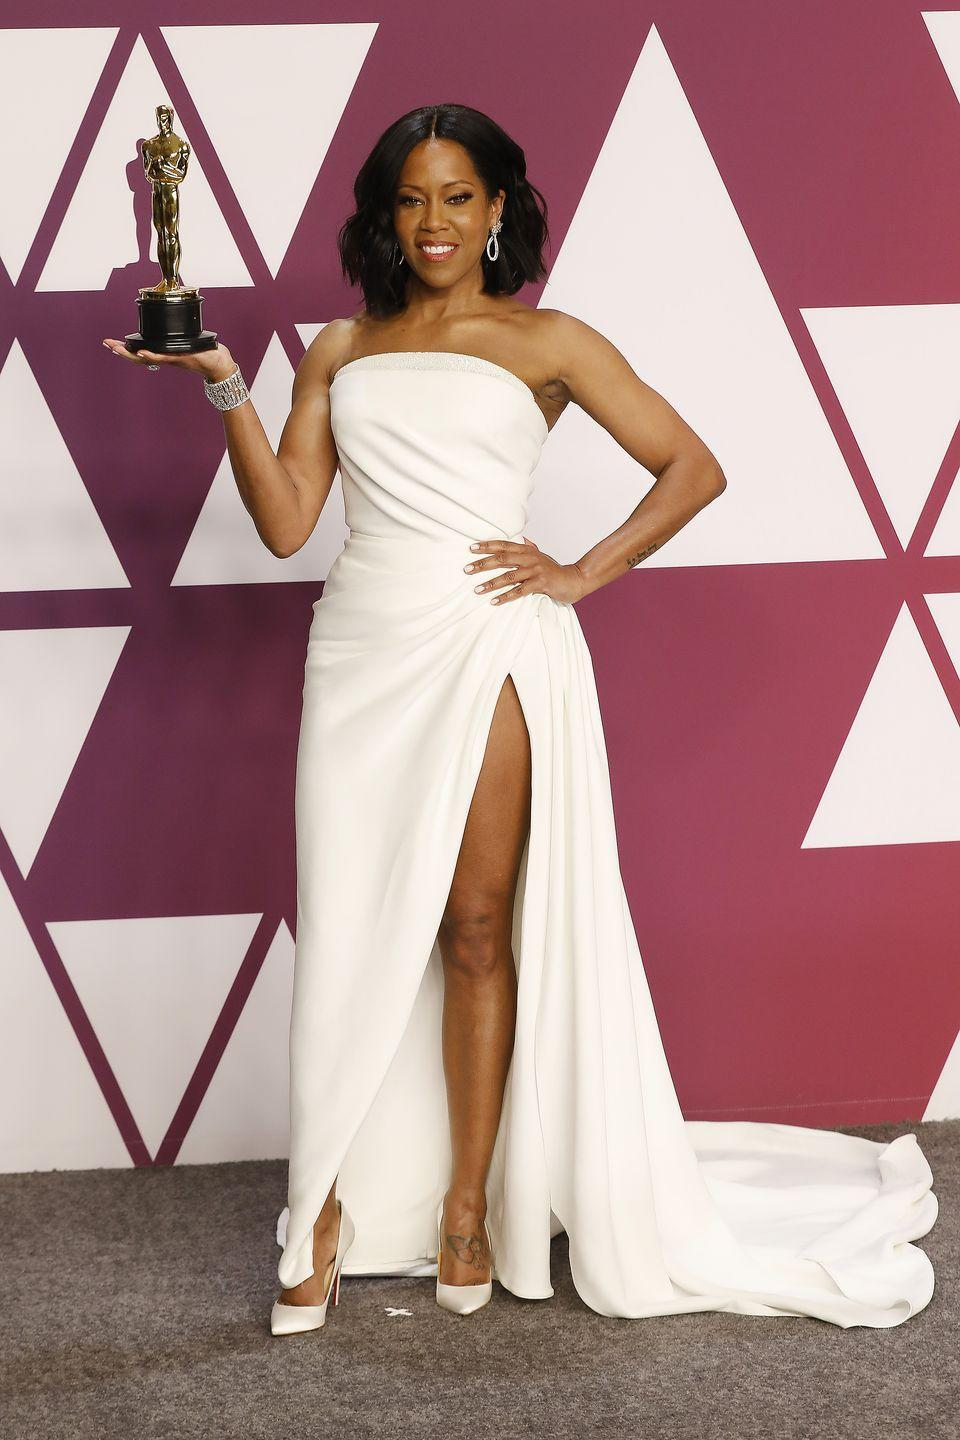 <p>Regina King poses with her first Oscar in an Oscar de la Renta dress. She won Best Supporting Actress for her performance in <em>If Beale Street Could Talk</em>. </p>